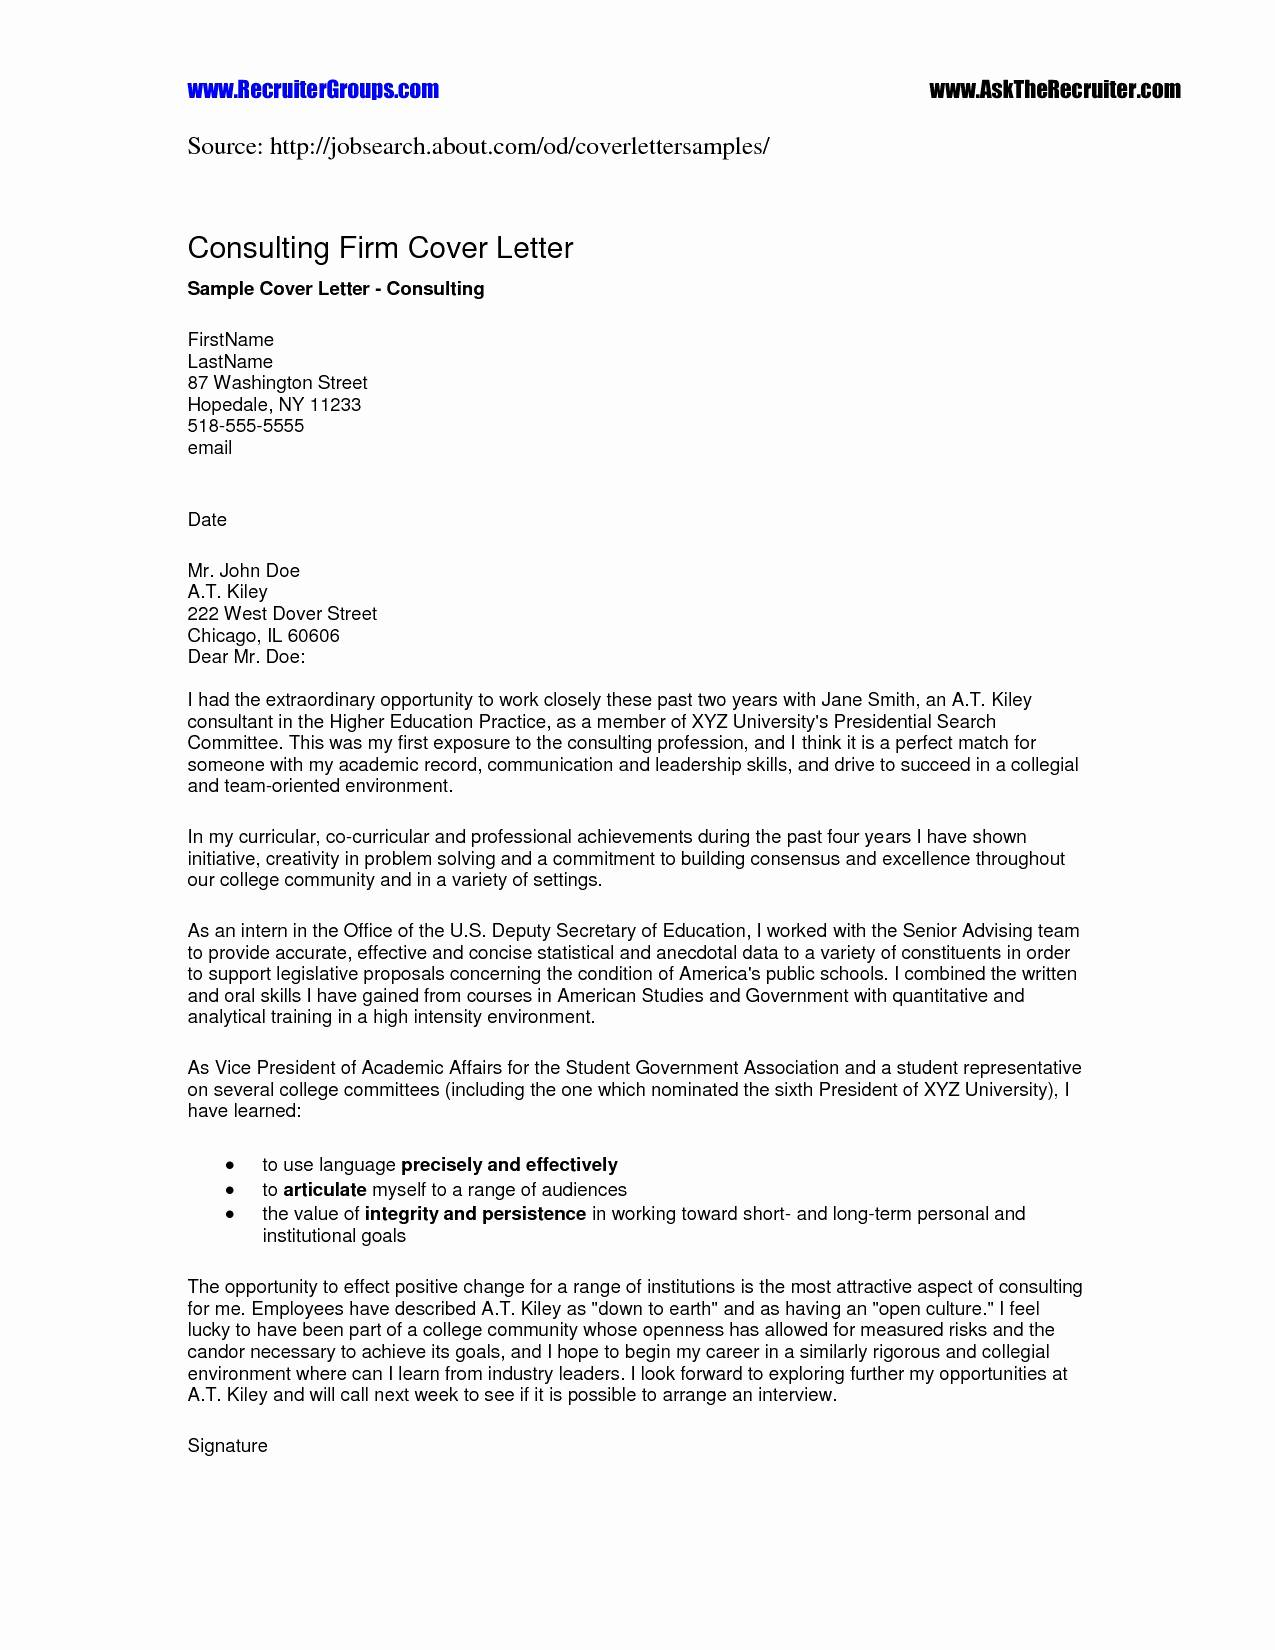 Cover Letter Template for Medical assistant - Cover Letter Examples for Medical assistants Beautiful 12 Unique